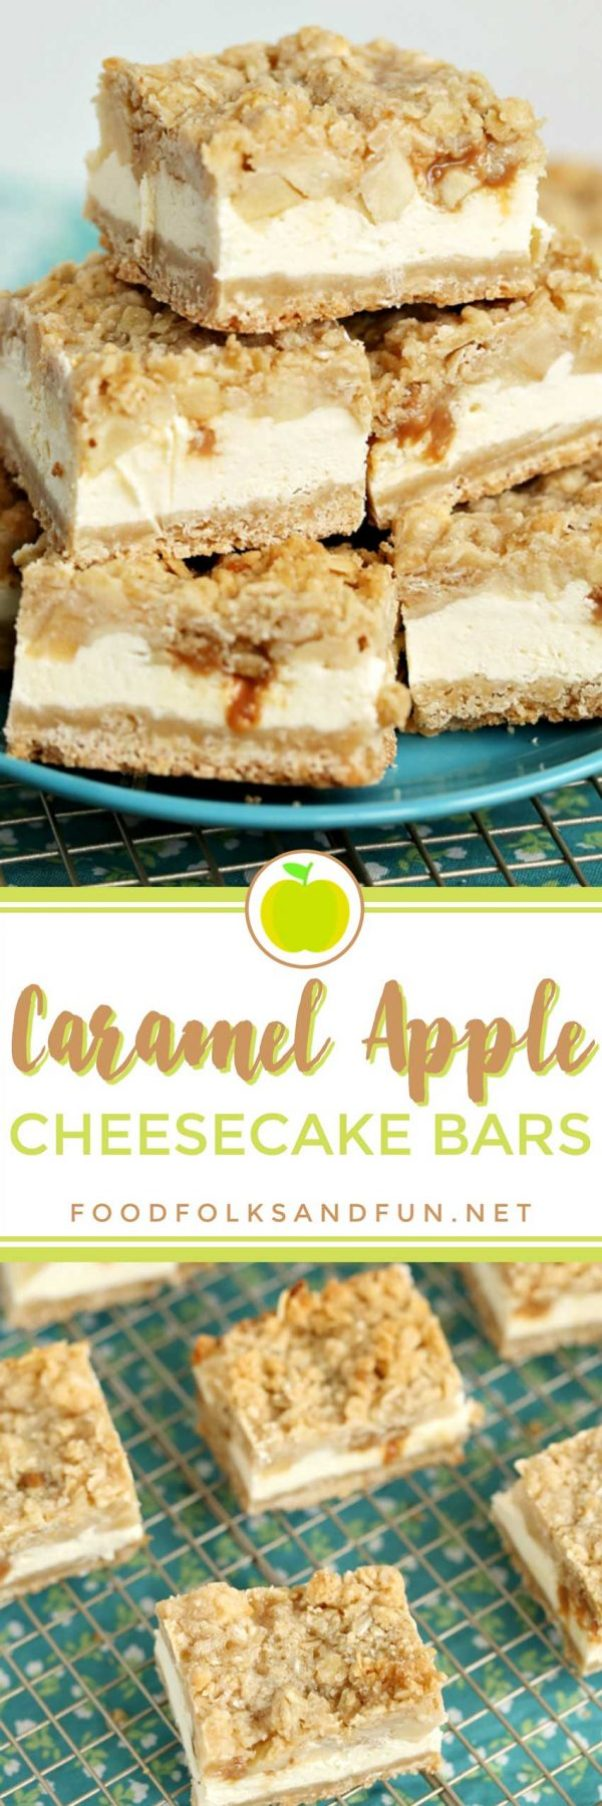 The best Caramel Apple Cheesecake Bars